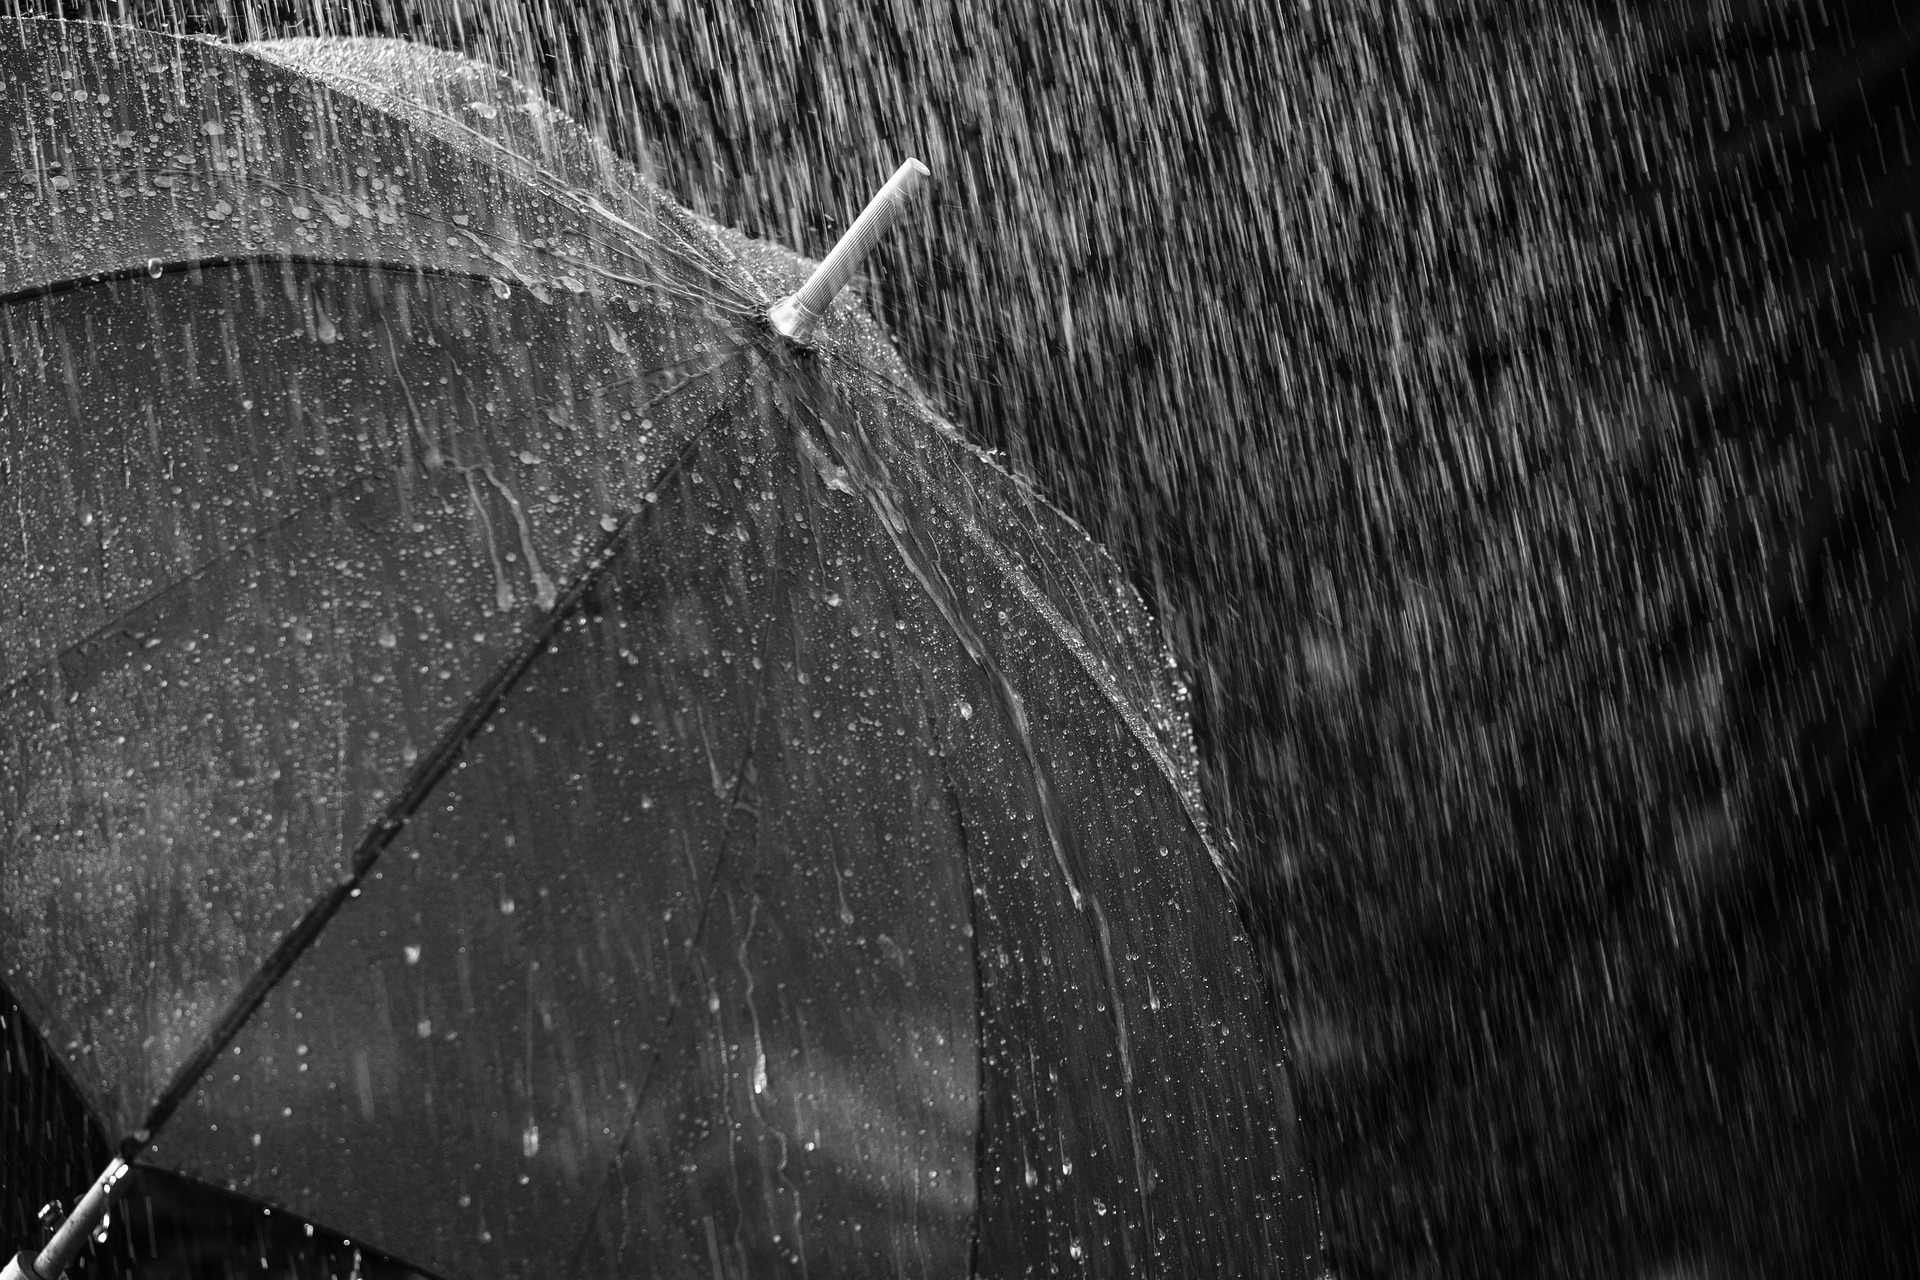 Gwent weather to be wet going into the weekend, says Met Office as warnings issued